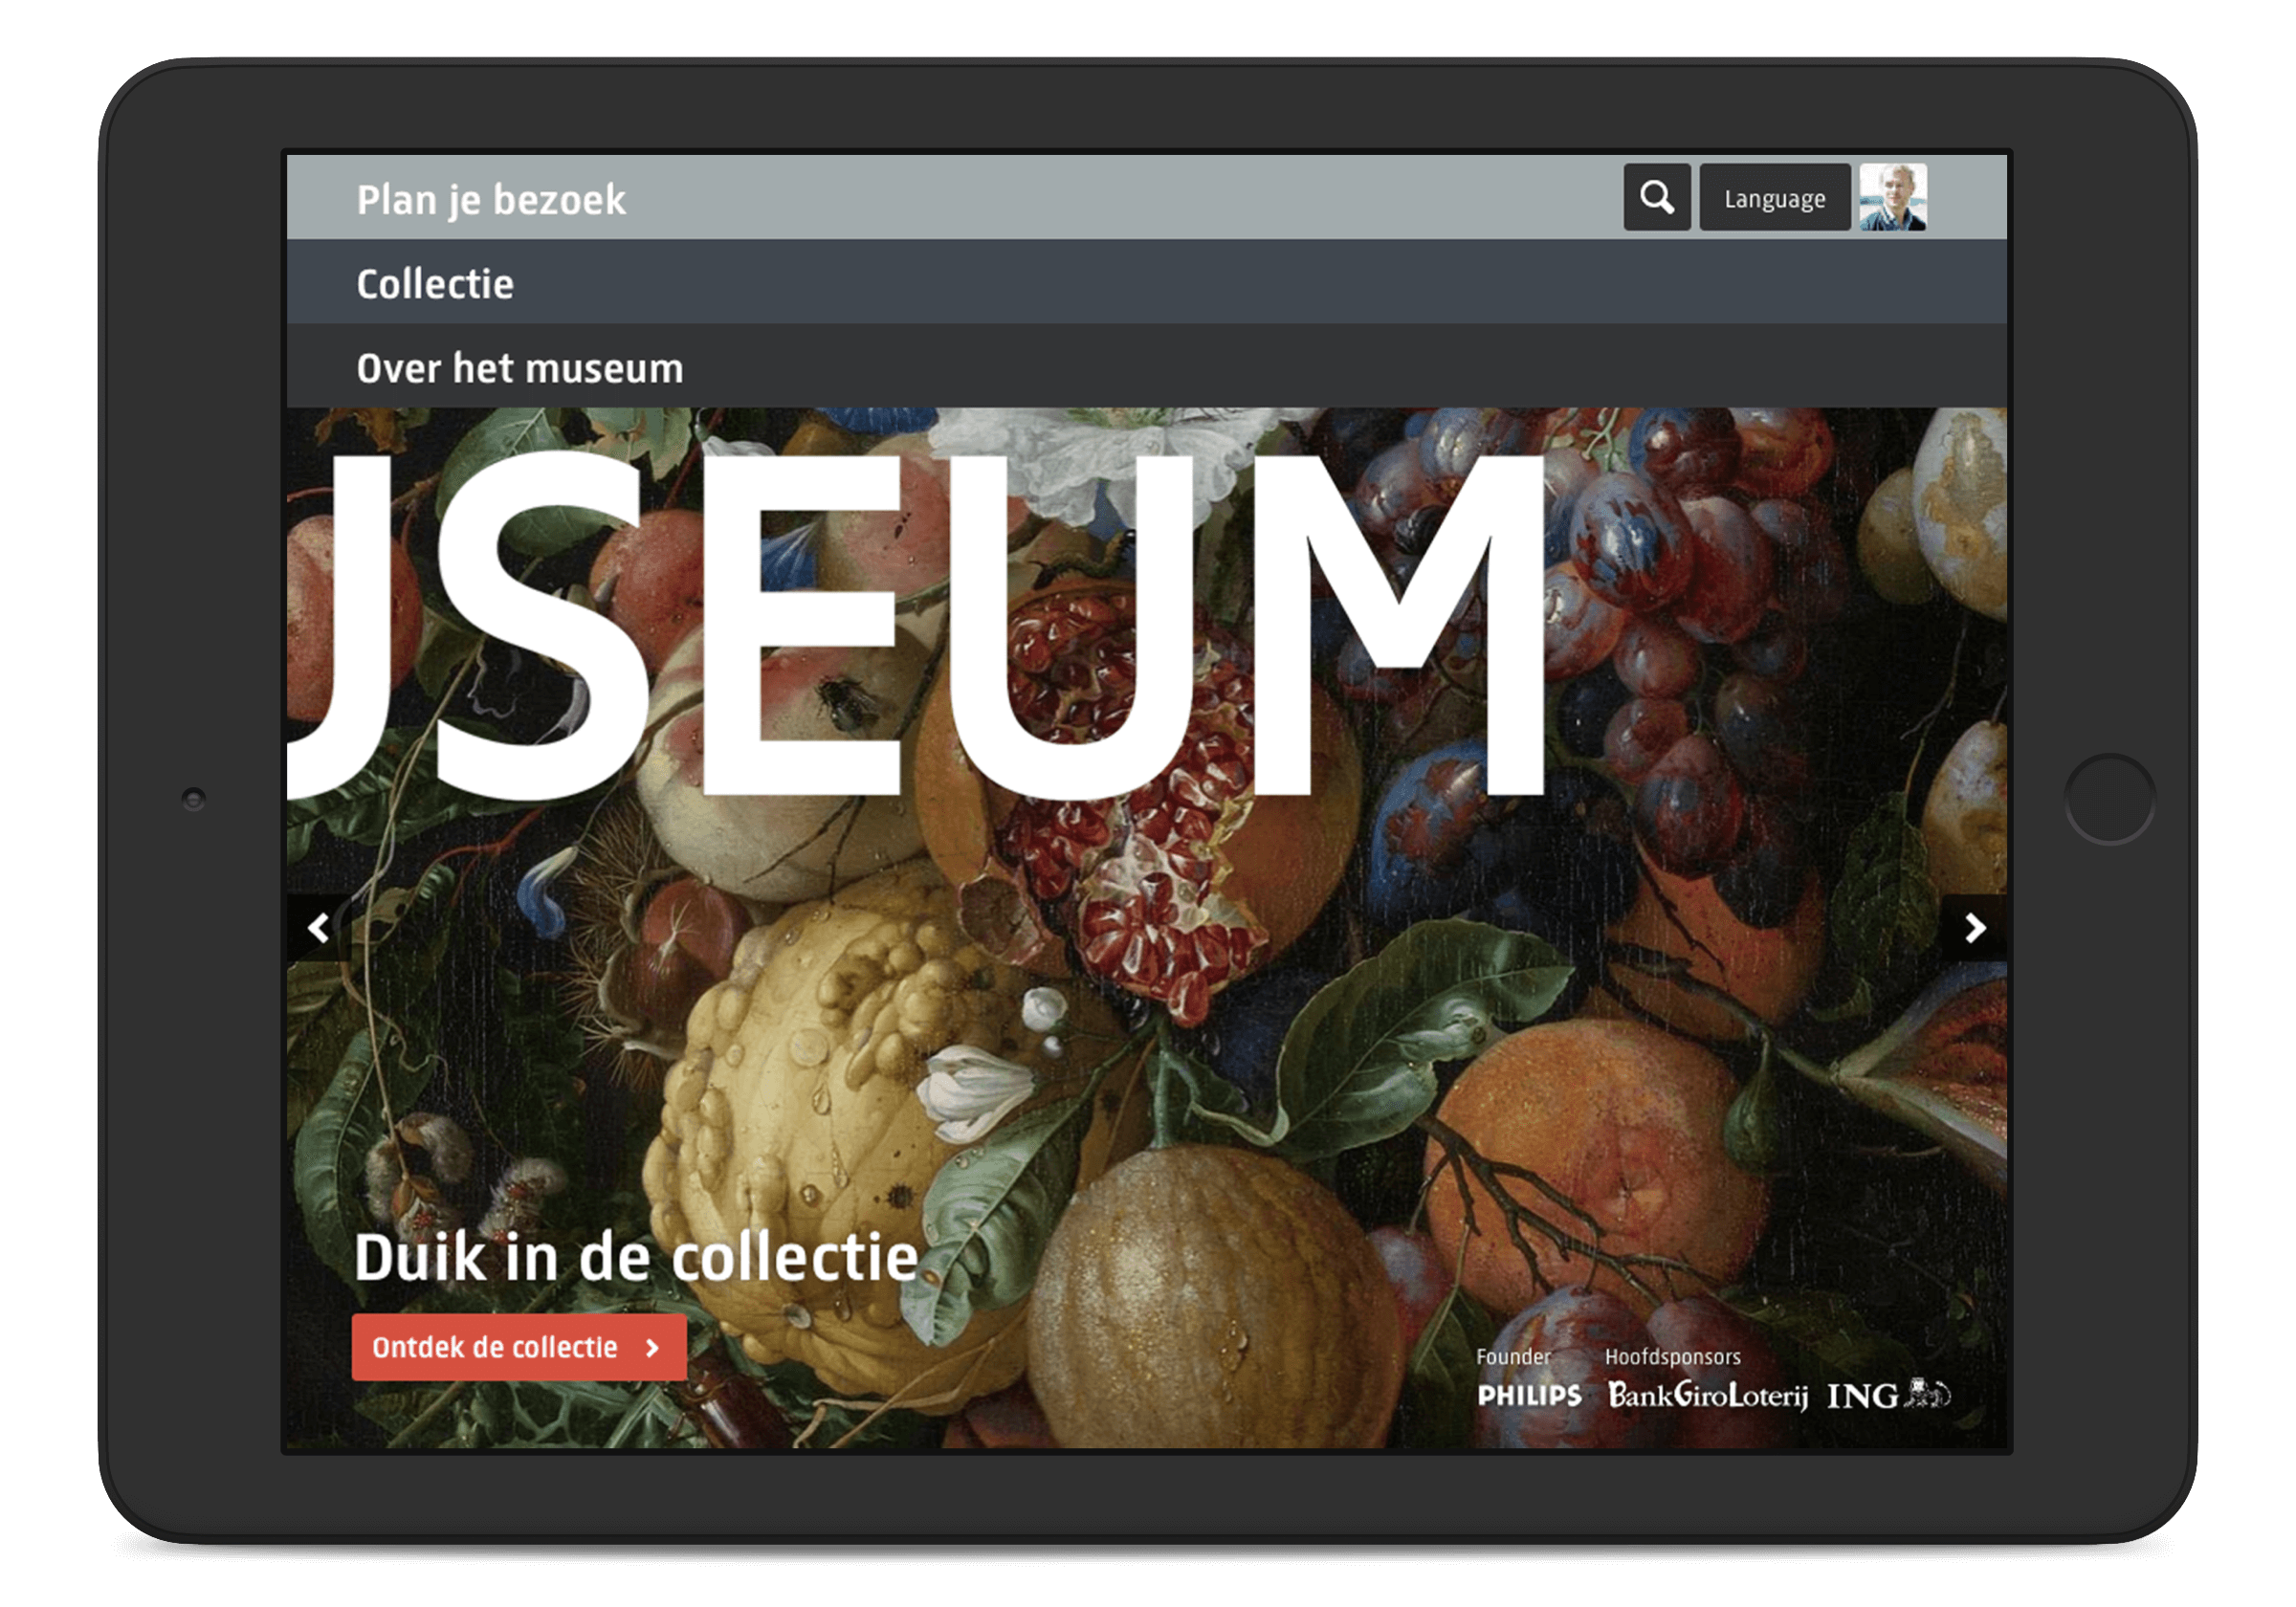 Rijksmuseum website, homepage